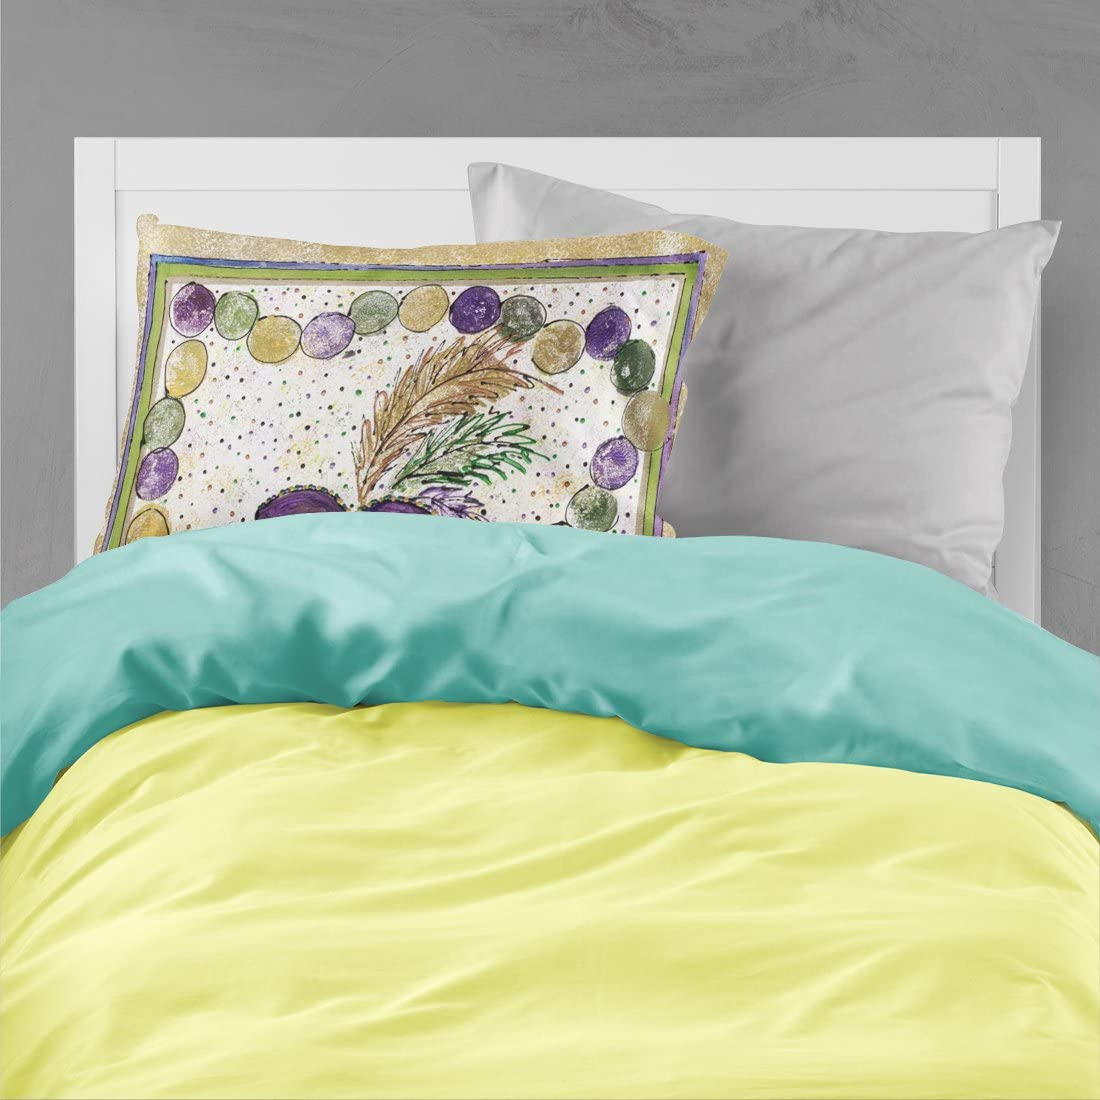 Multicolor Caroline/'s Treasures 8851PILLOWCASE Bee on Yellow Moisture Wicking Fabric Standard Pillowcase Standard Carolines Treasures 8851PILLOWCASE Bee on Yellow Moisture Wicking Fabric Standard Pillowcase